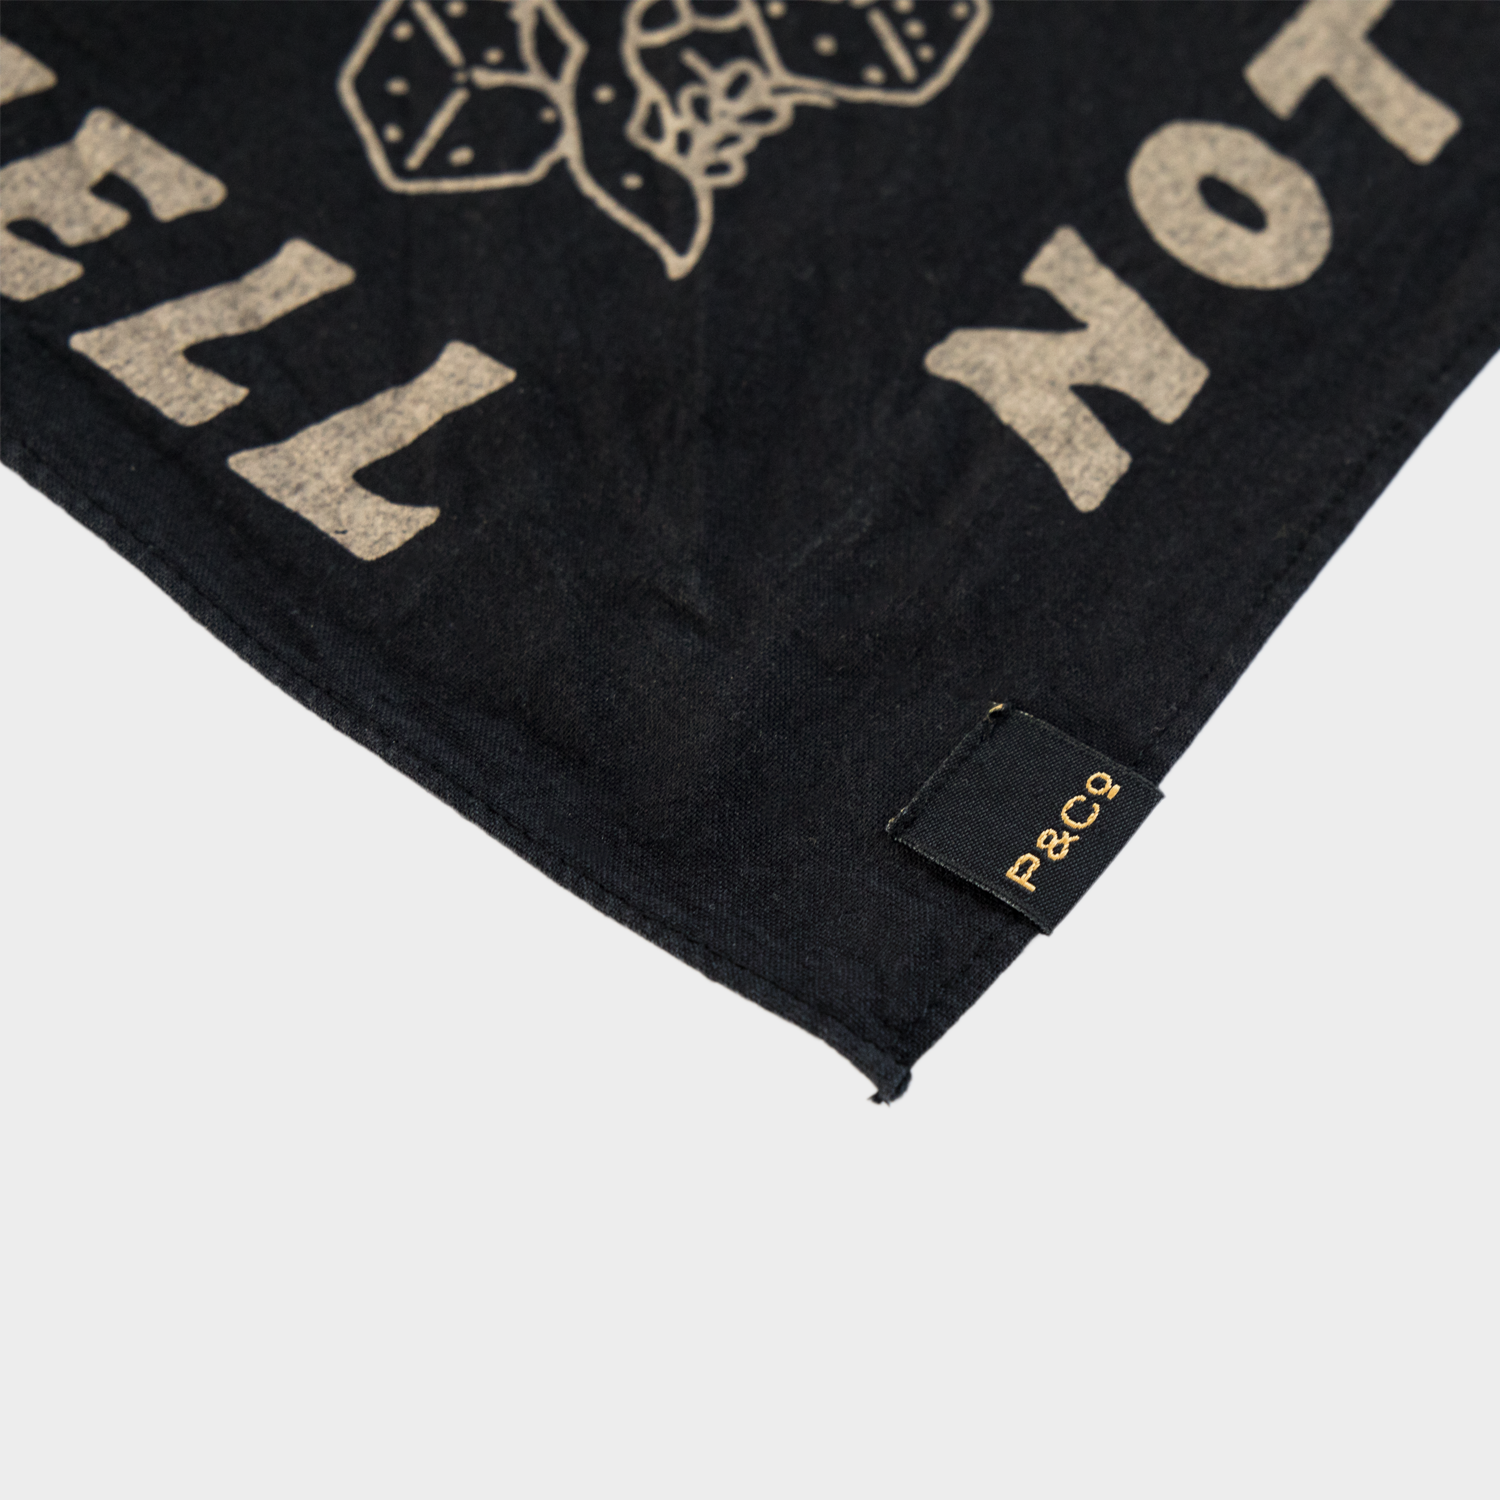 P&Co - Black Not a Hope In Hell Bandana - Provision & Co